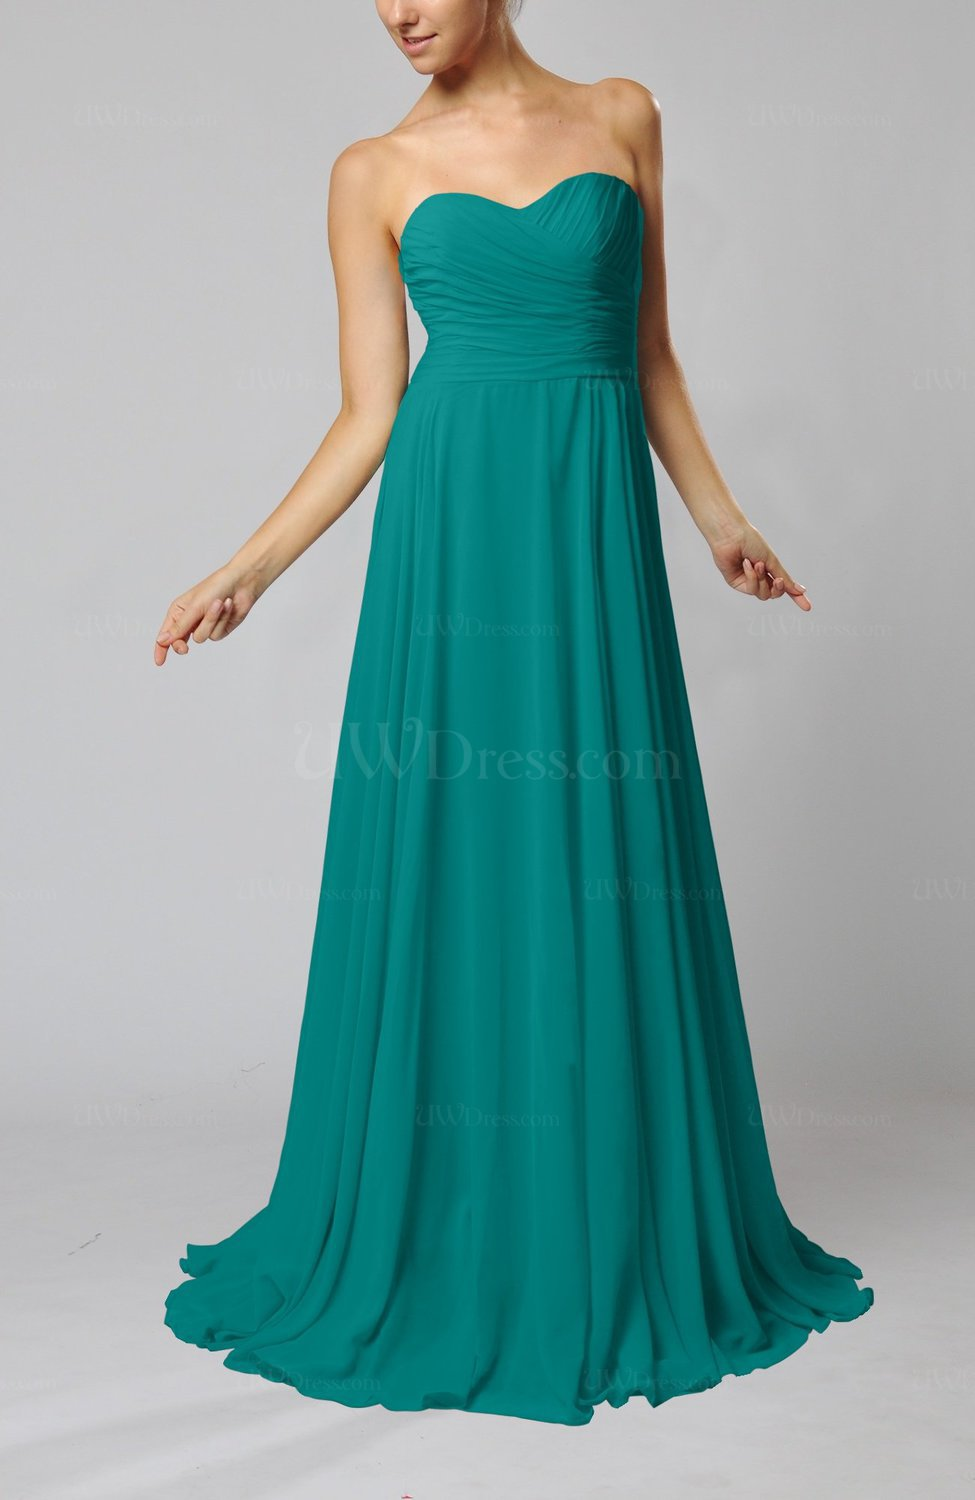 5a041a41f70 Emerald Green Simple Sheath Sweetheart Zip up Sweep Train Ruching Wedding  Guest Dresses (Style D95824)